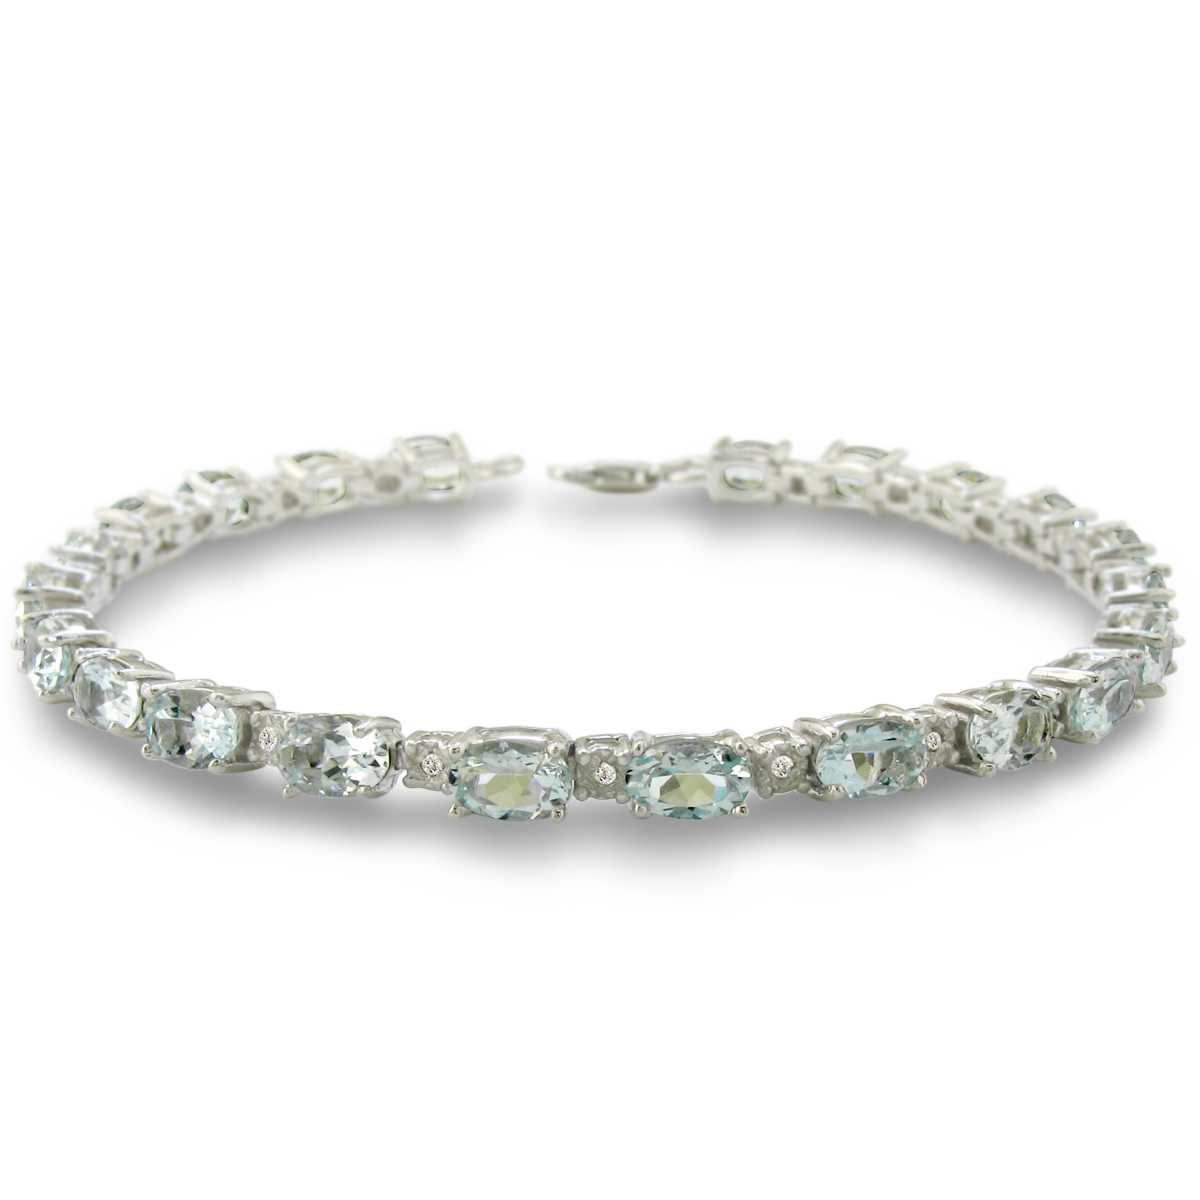 10 Carat Aquamarine and Diamond Bracelet in Sterling Silver 7 inches by SuperJeweler